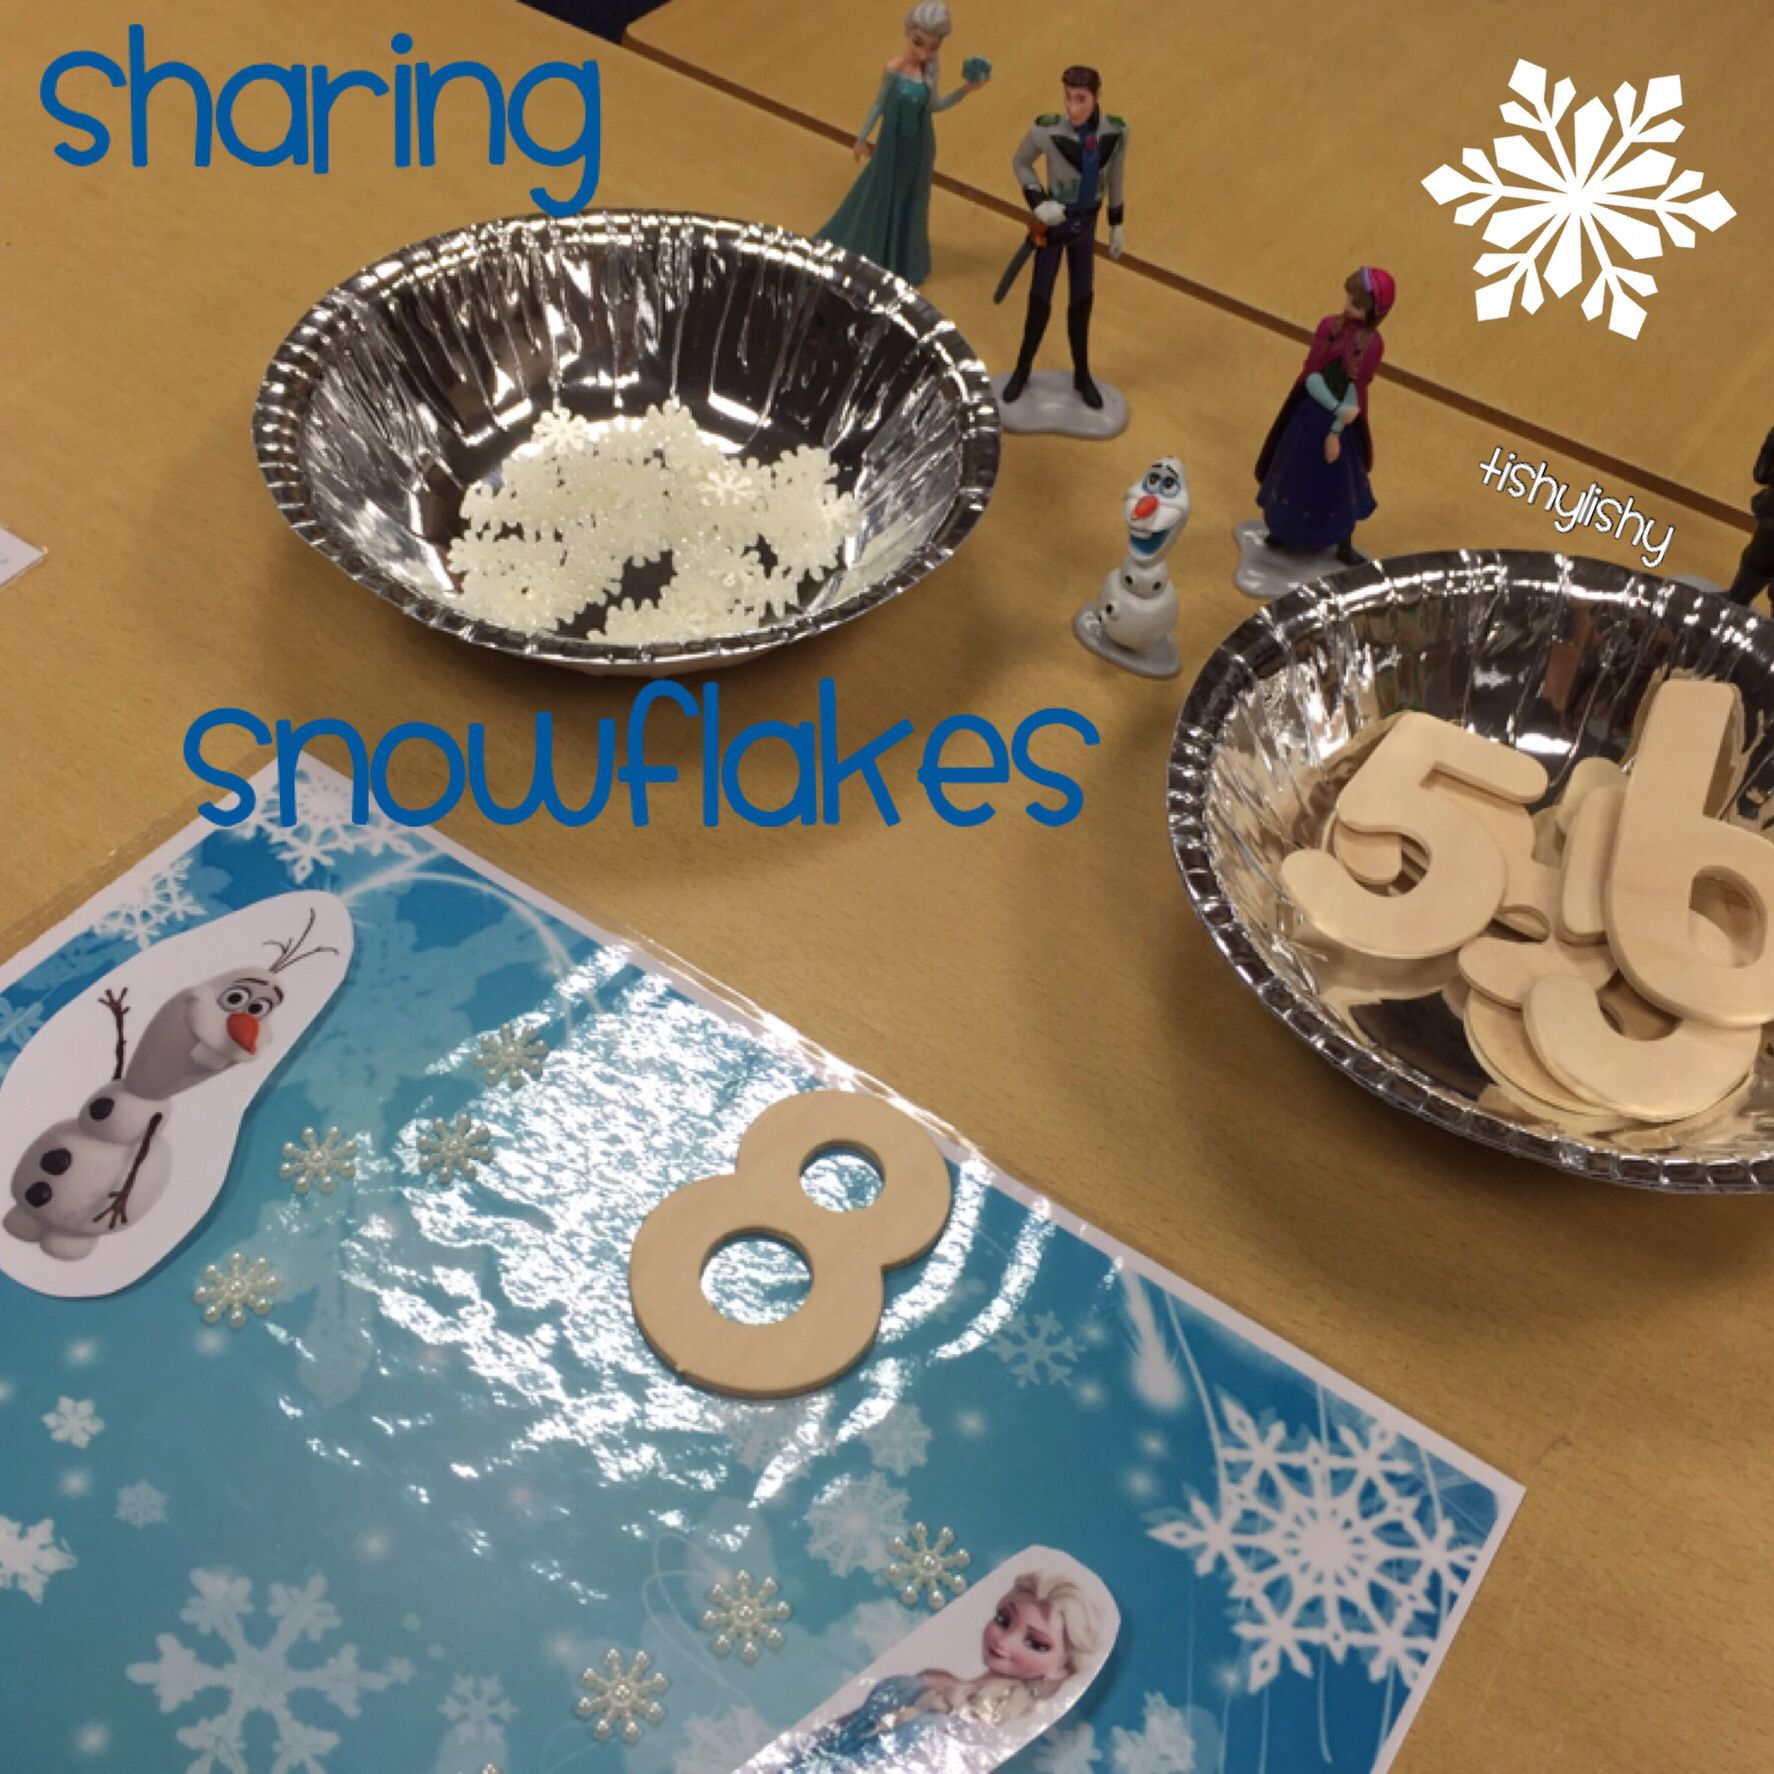 Using The Frozen Theme To Explore Sharing Combining